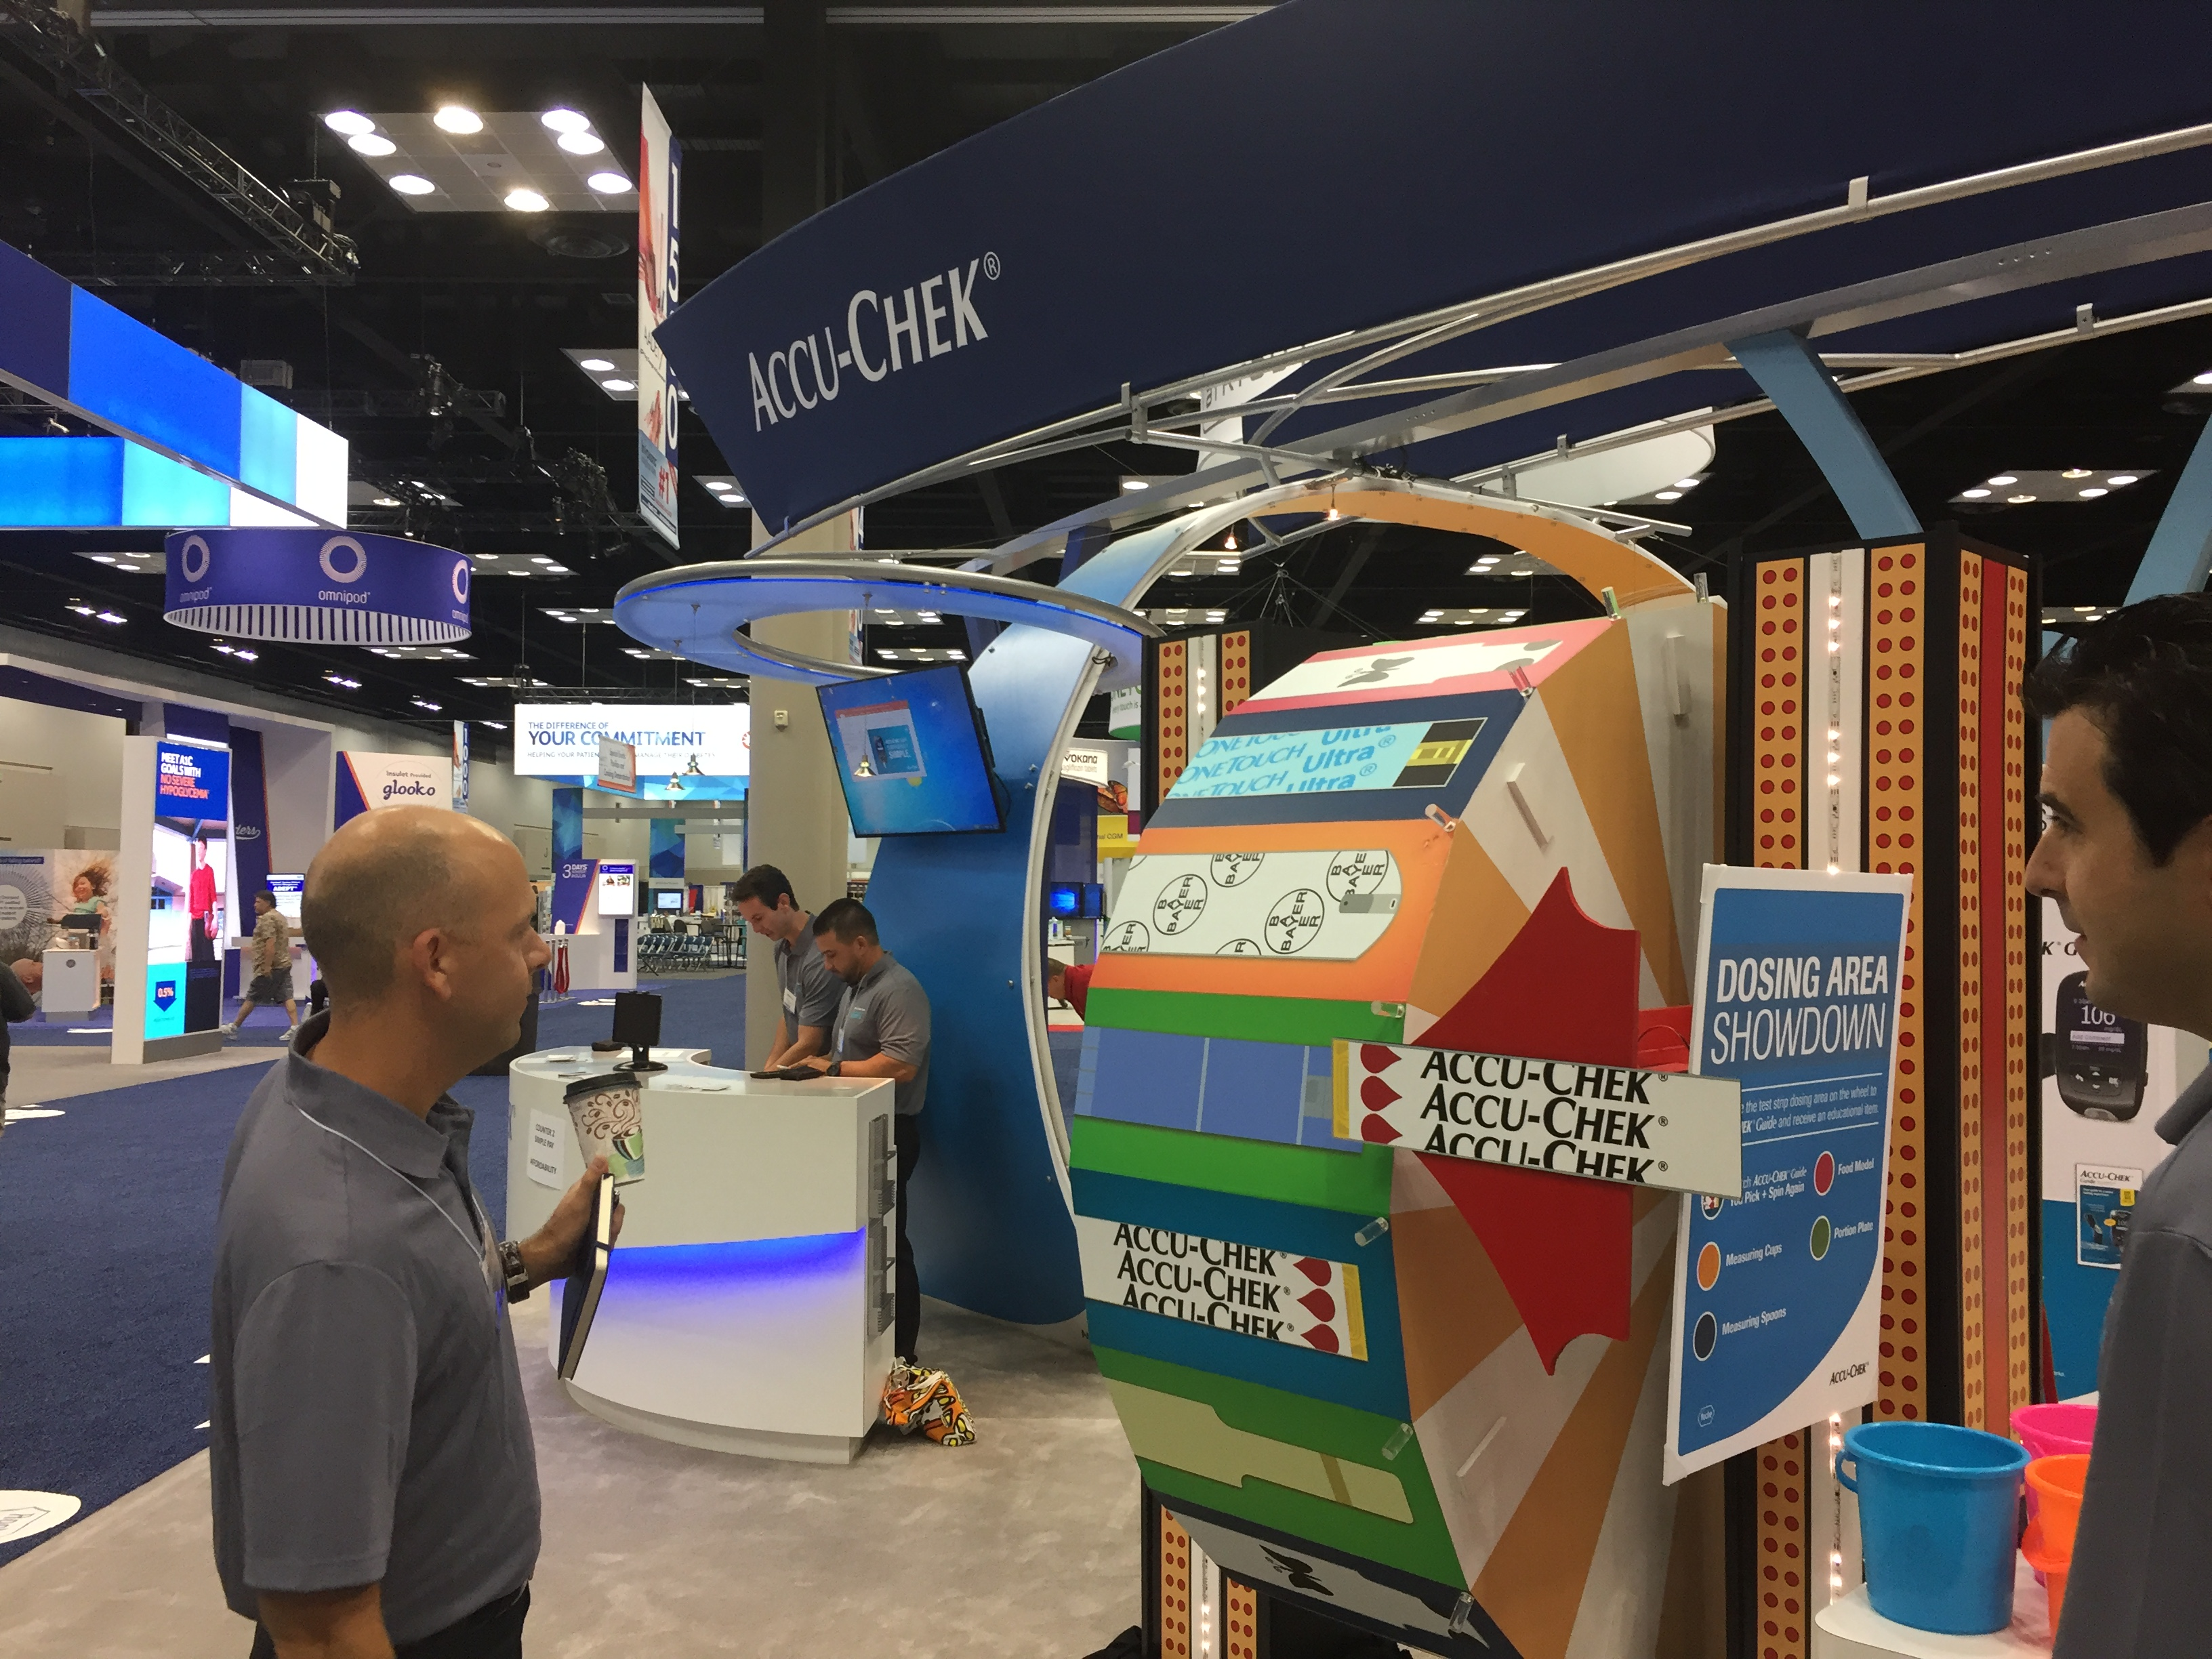 Customized Prize Wheel Trade Show Booth Ideas Attract Visitors Traffic Builders